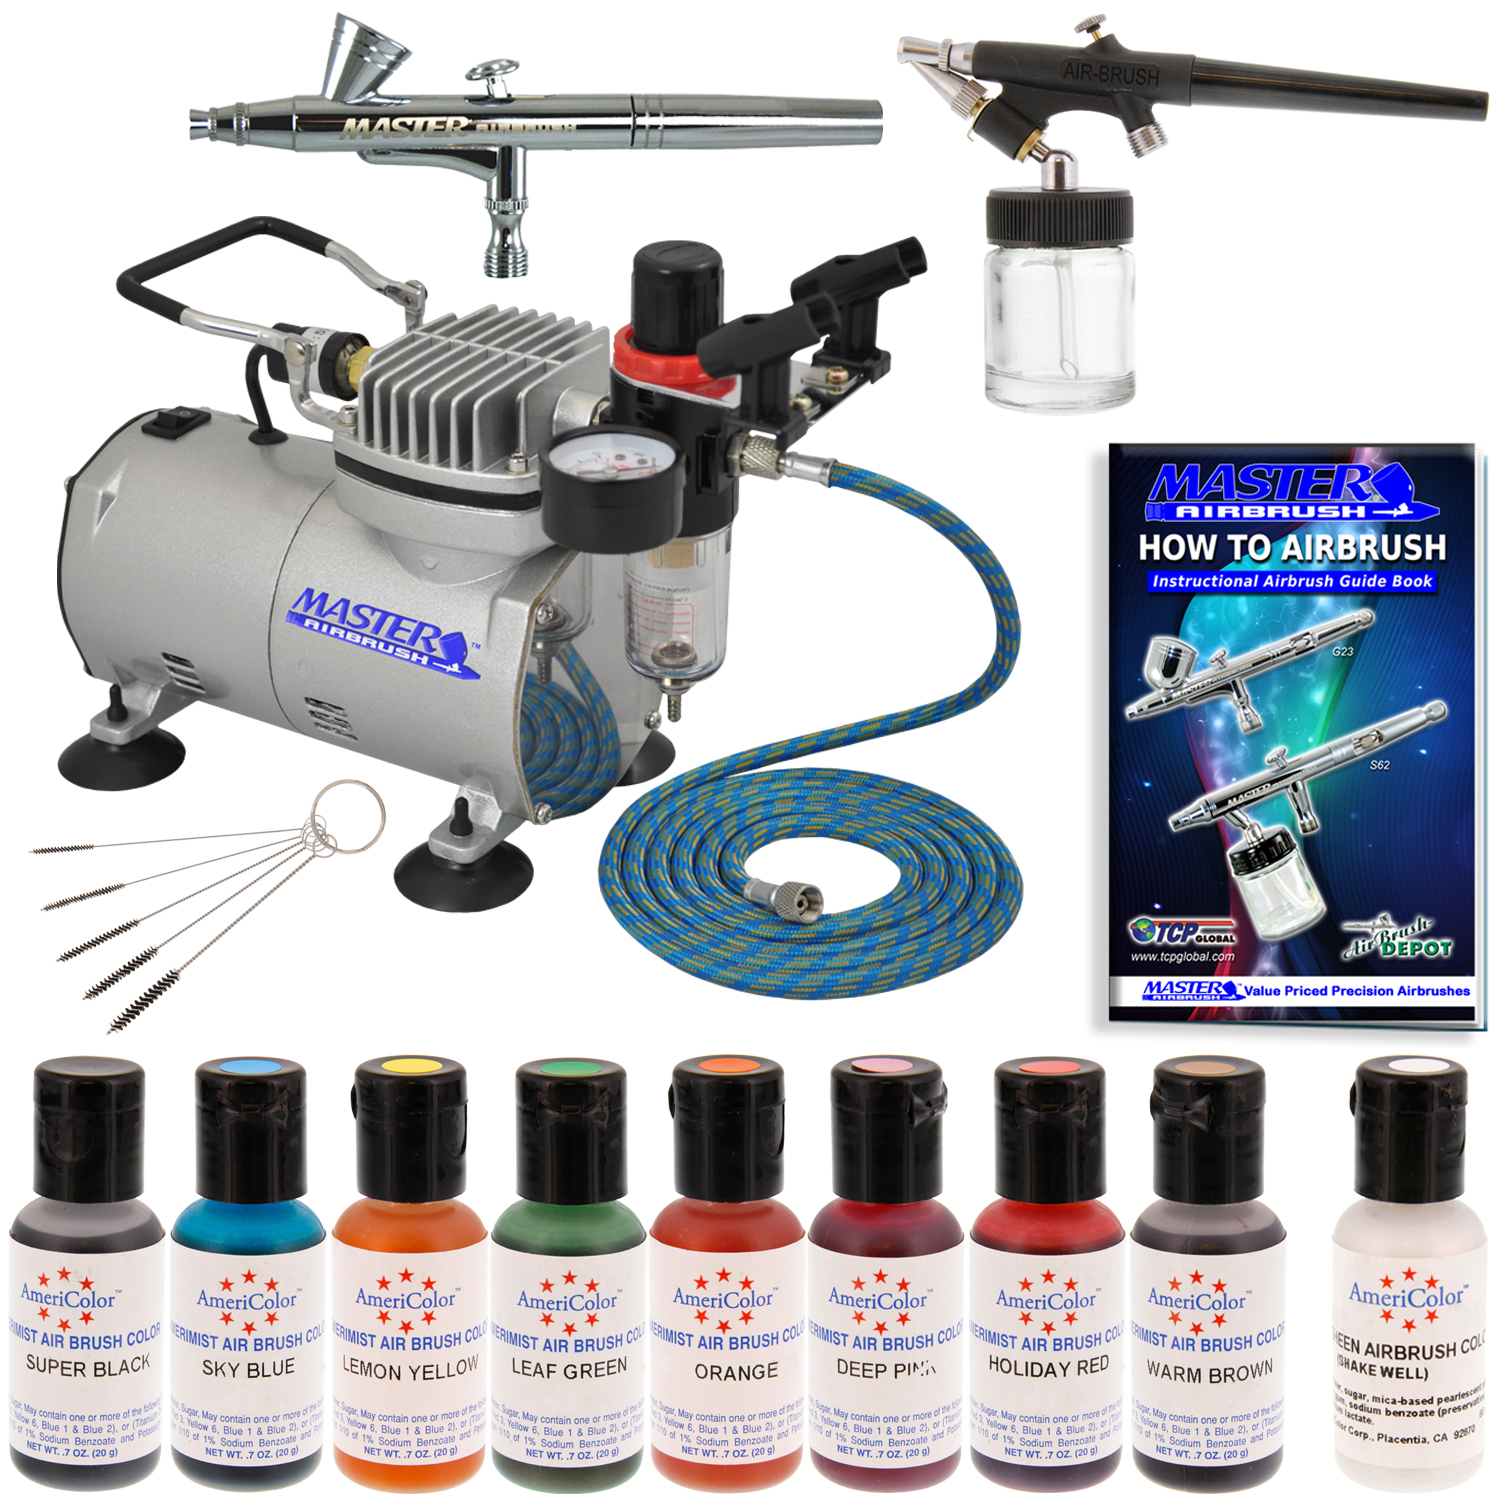 Complete Airbrush Cake Decorating Set : 2 Airbrush Cake Decorating Kit Compressor 12 Color Air ...